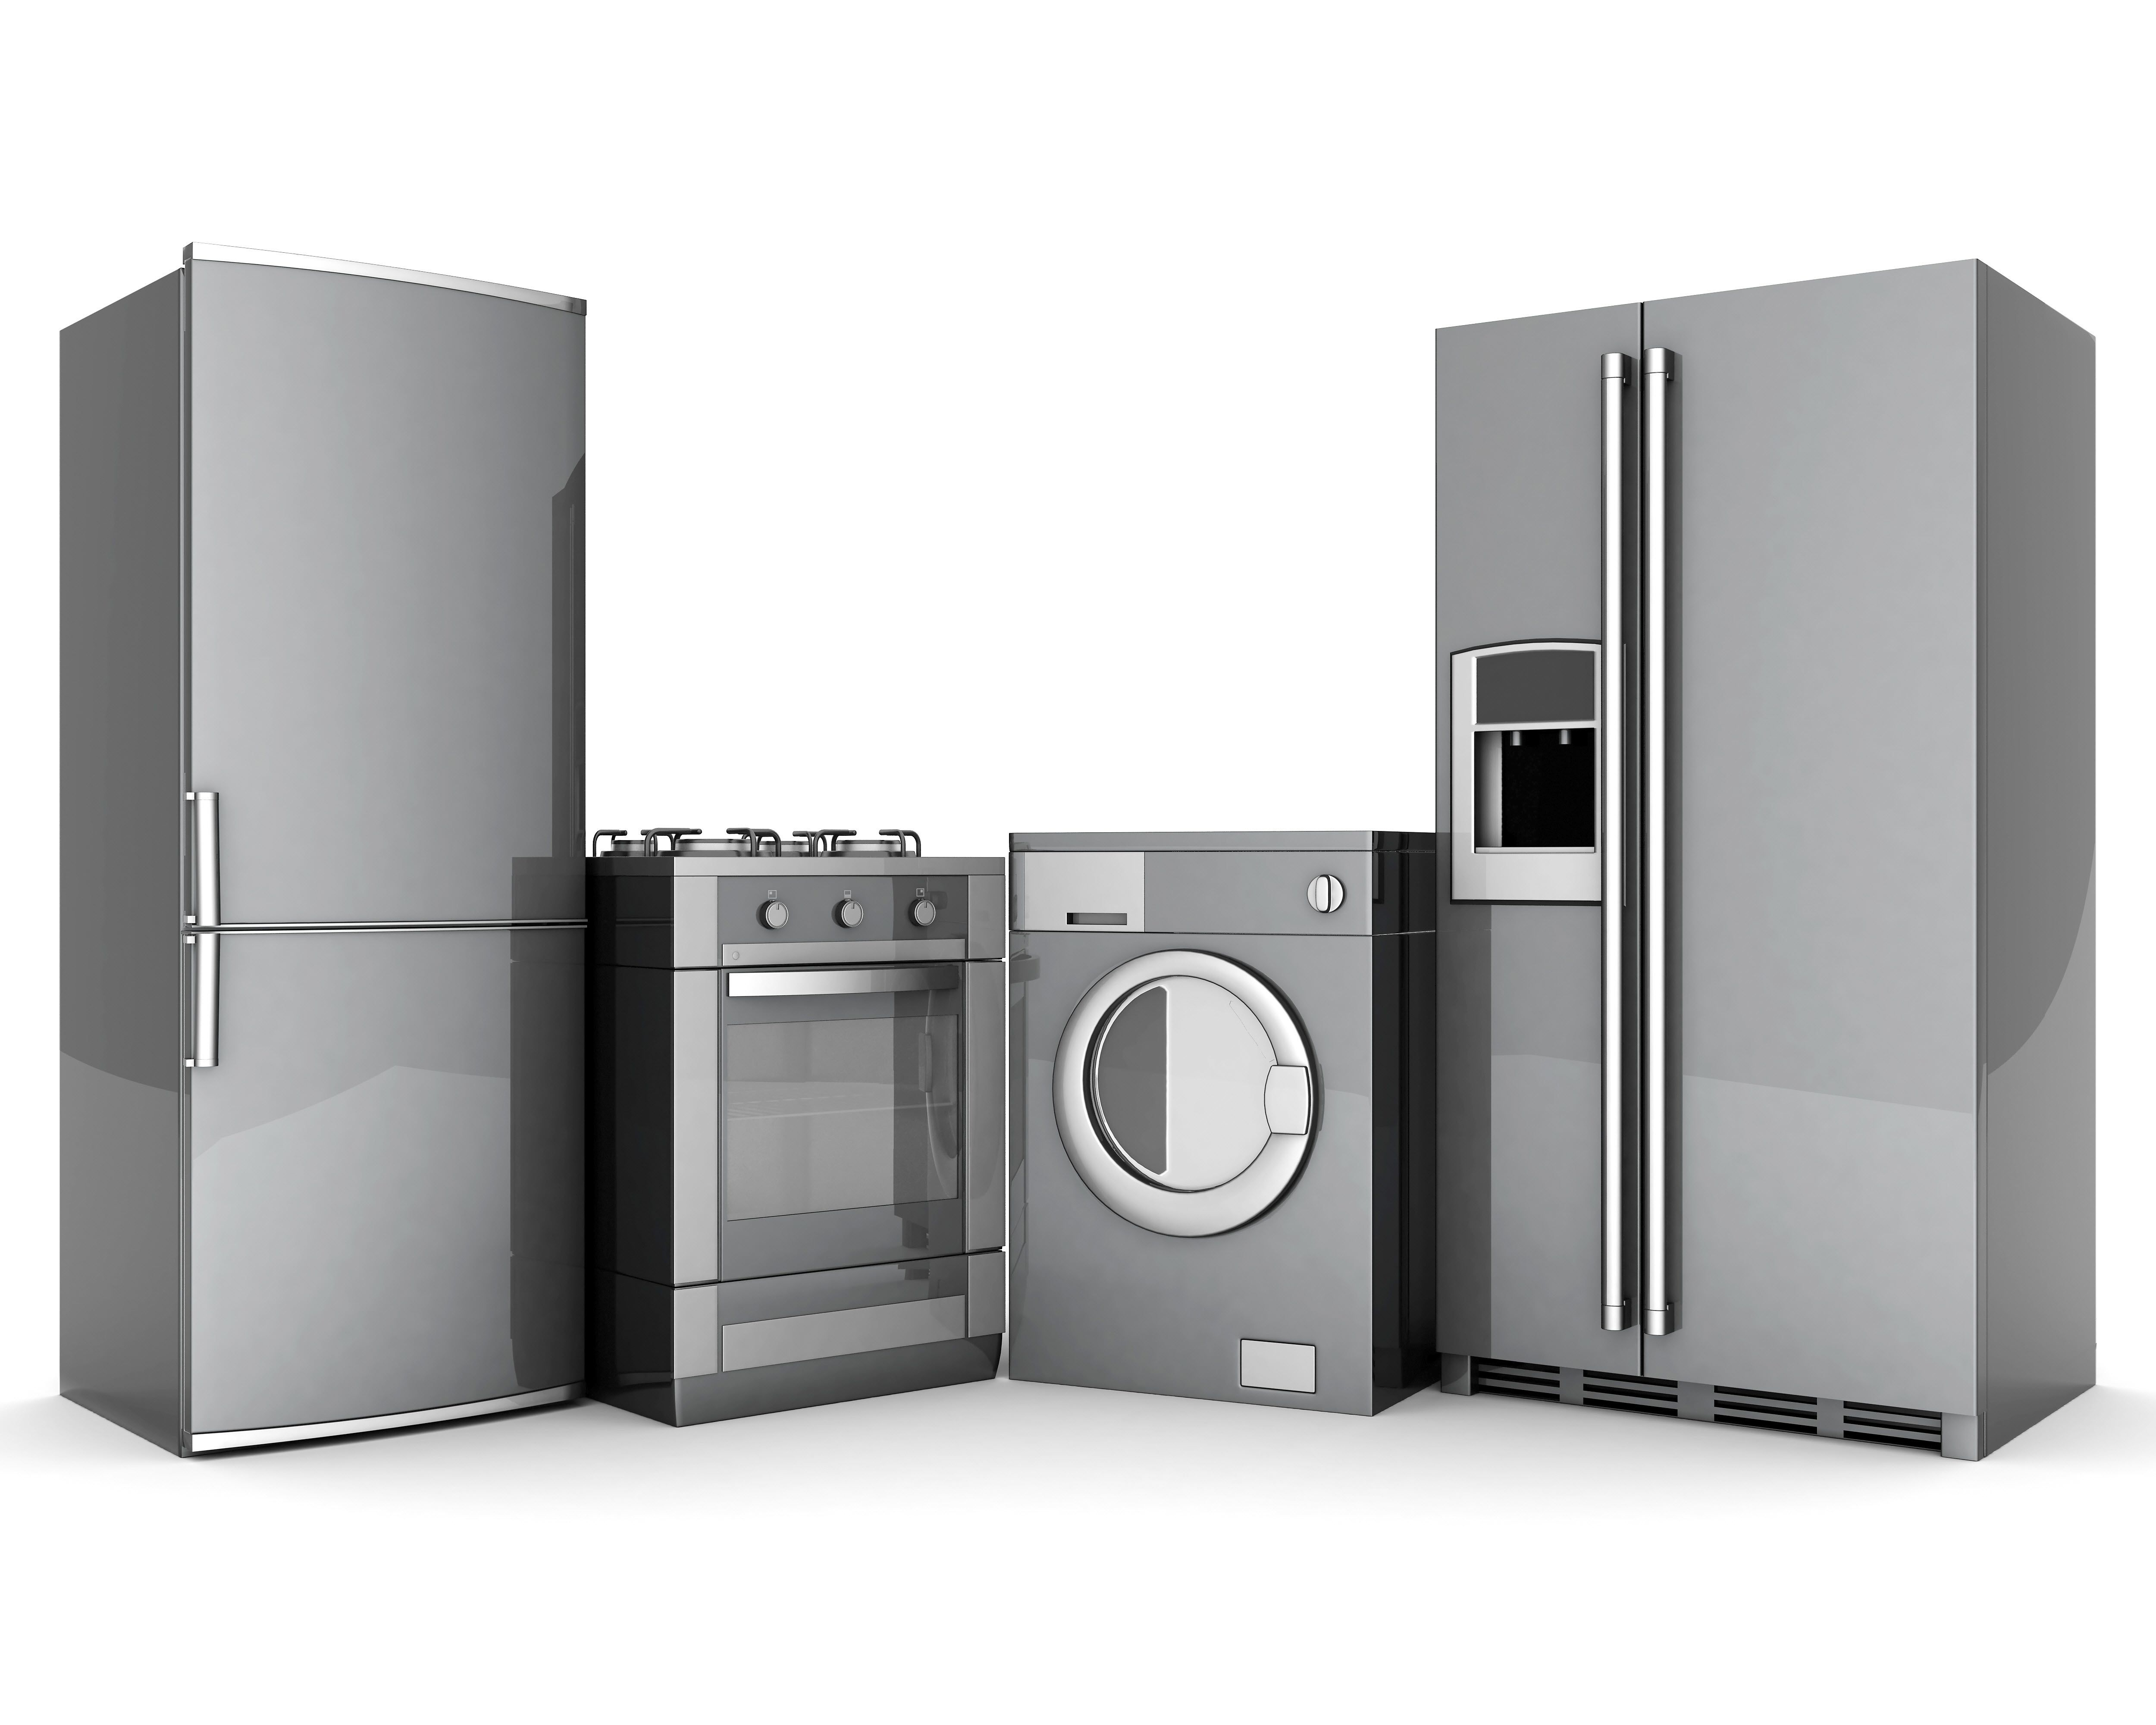 Perfect Get The Desired Home And Kitchen Appliances At A Very Affordable Price At  Www.gidimall